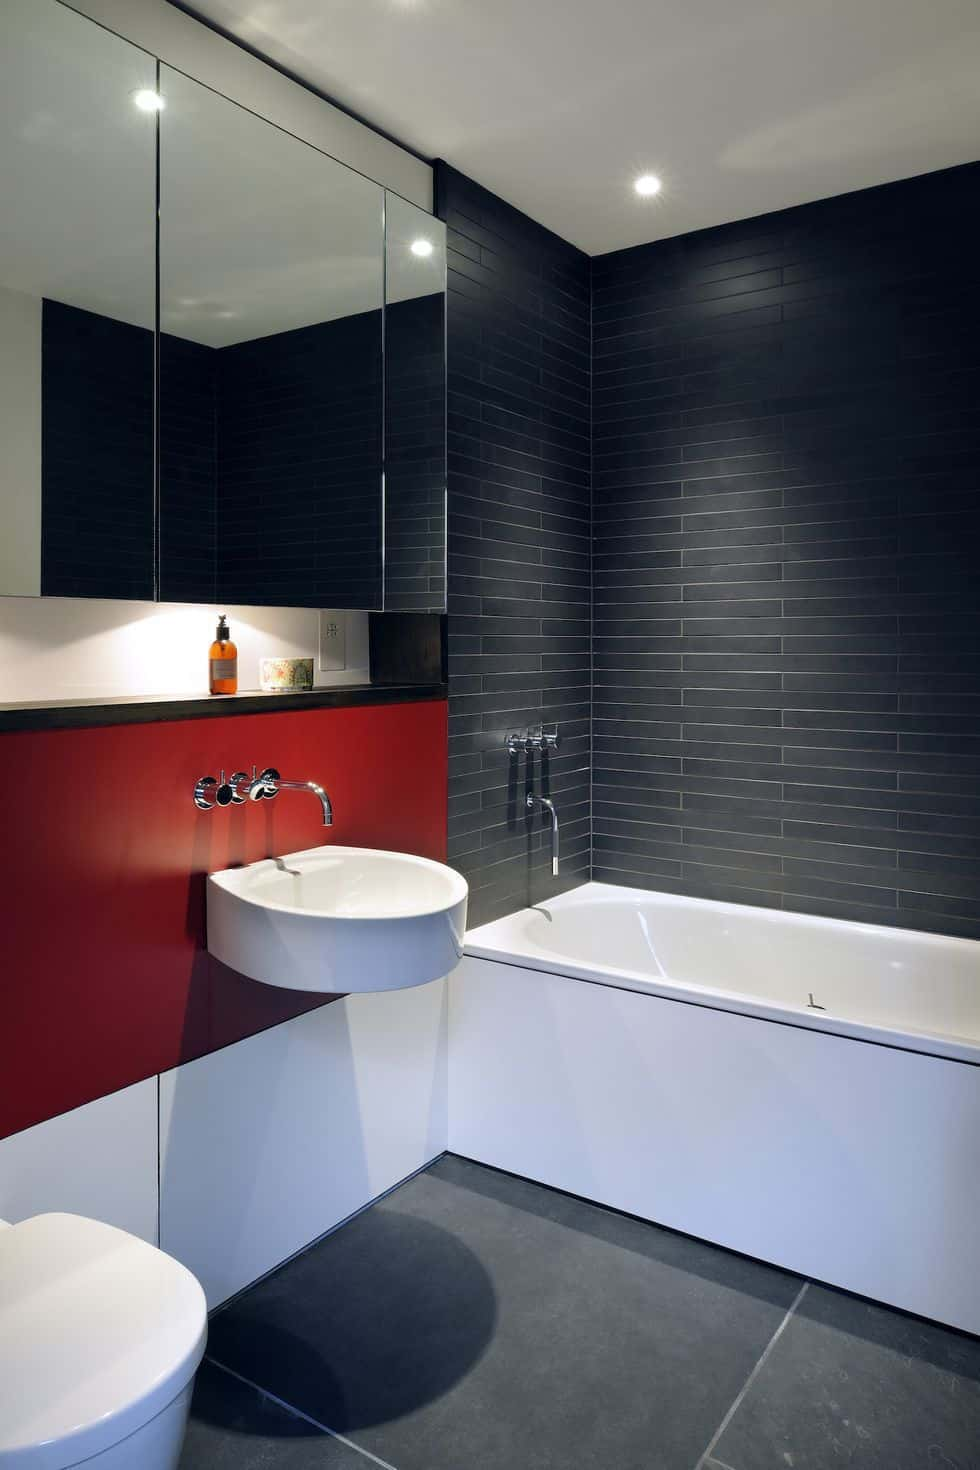 gray blathroom with red